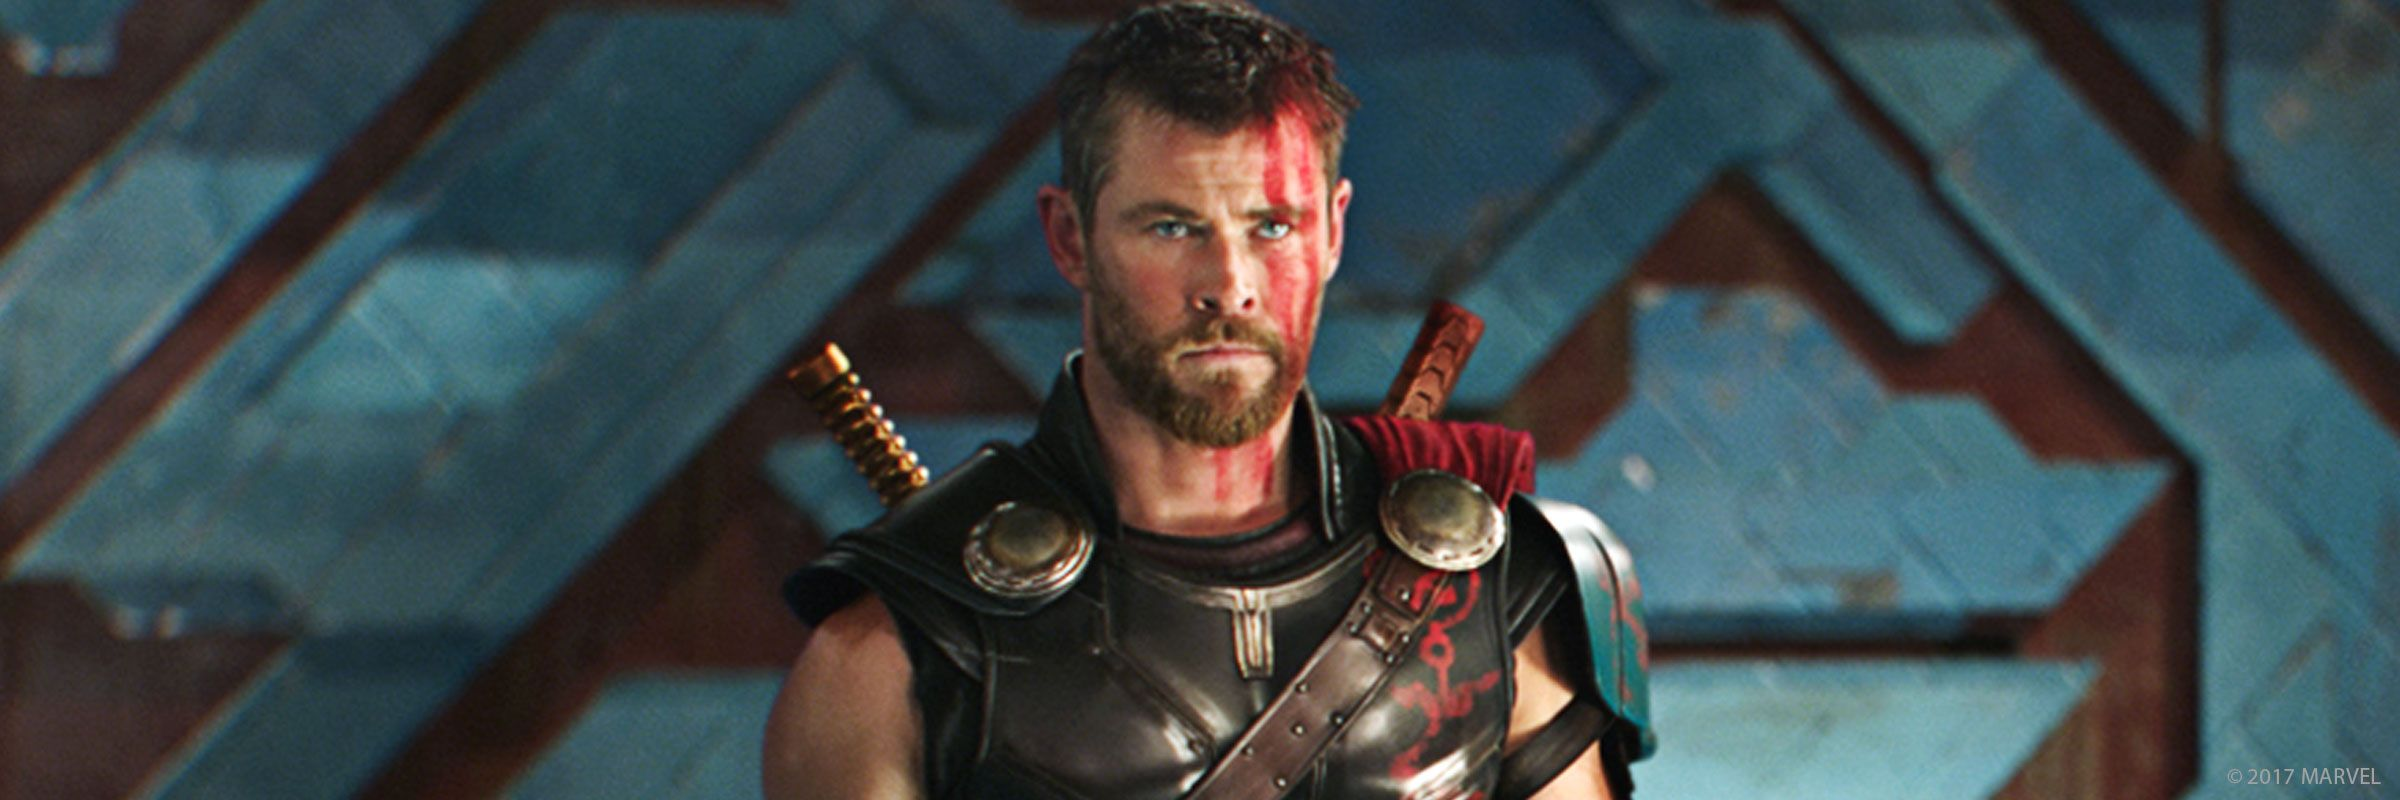 Thor: Ragnarok | Full Movie | Movies Anywhere